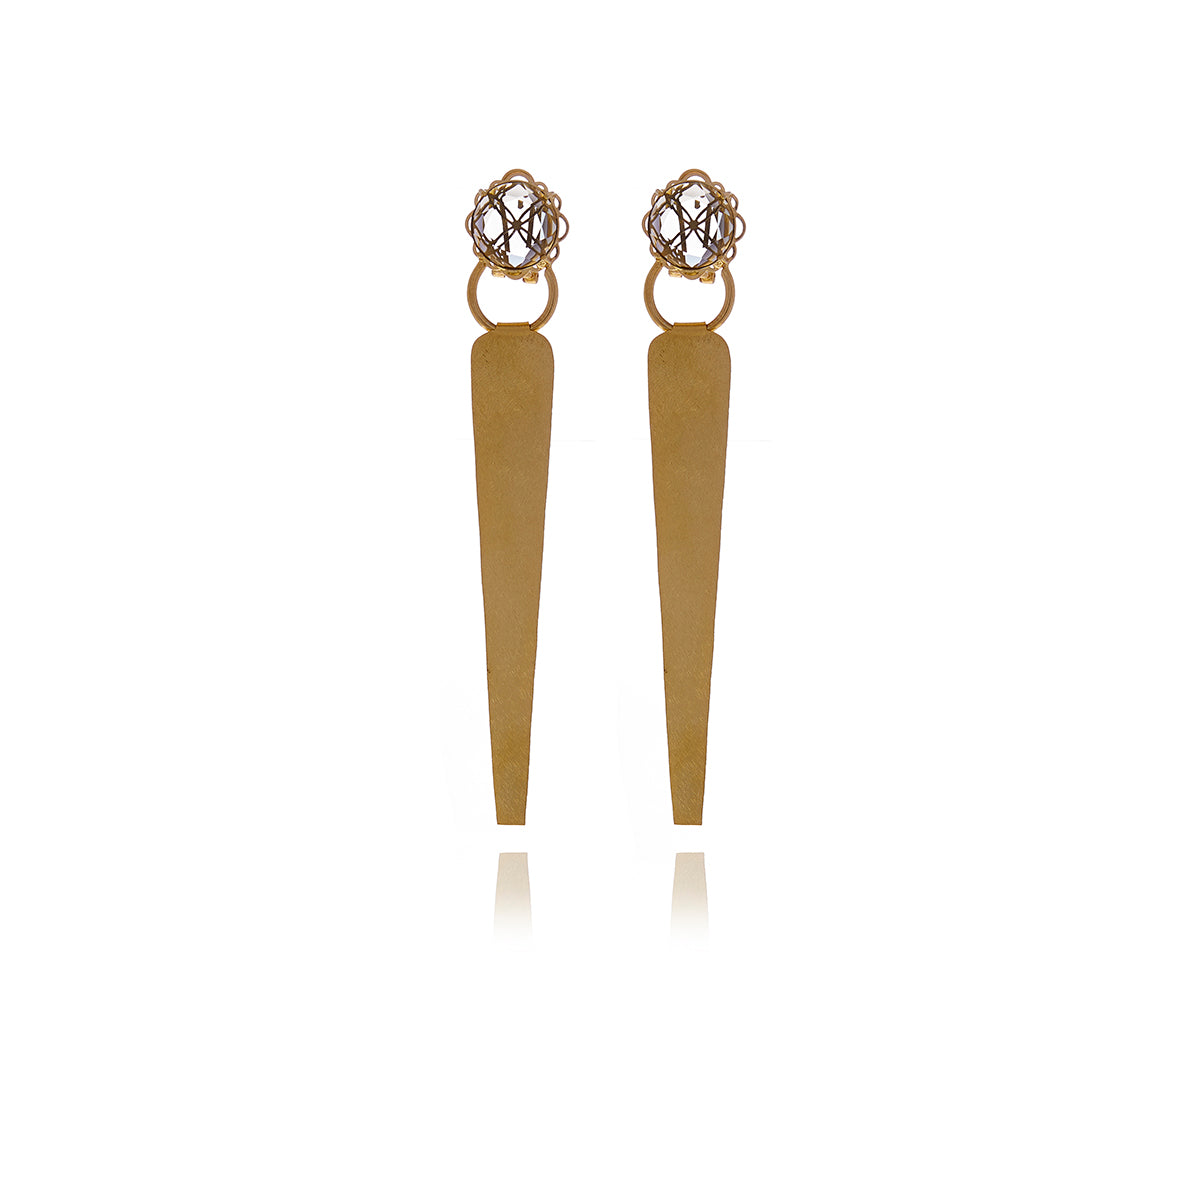 Releve Runway Gold Crystal Triangle Earrings - MCK Brands